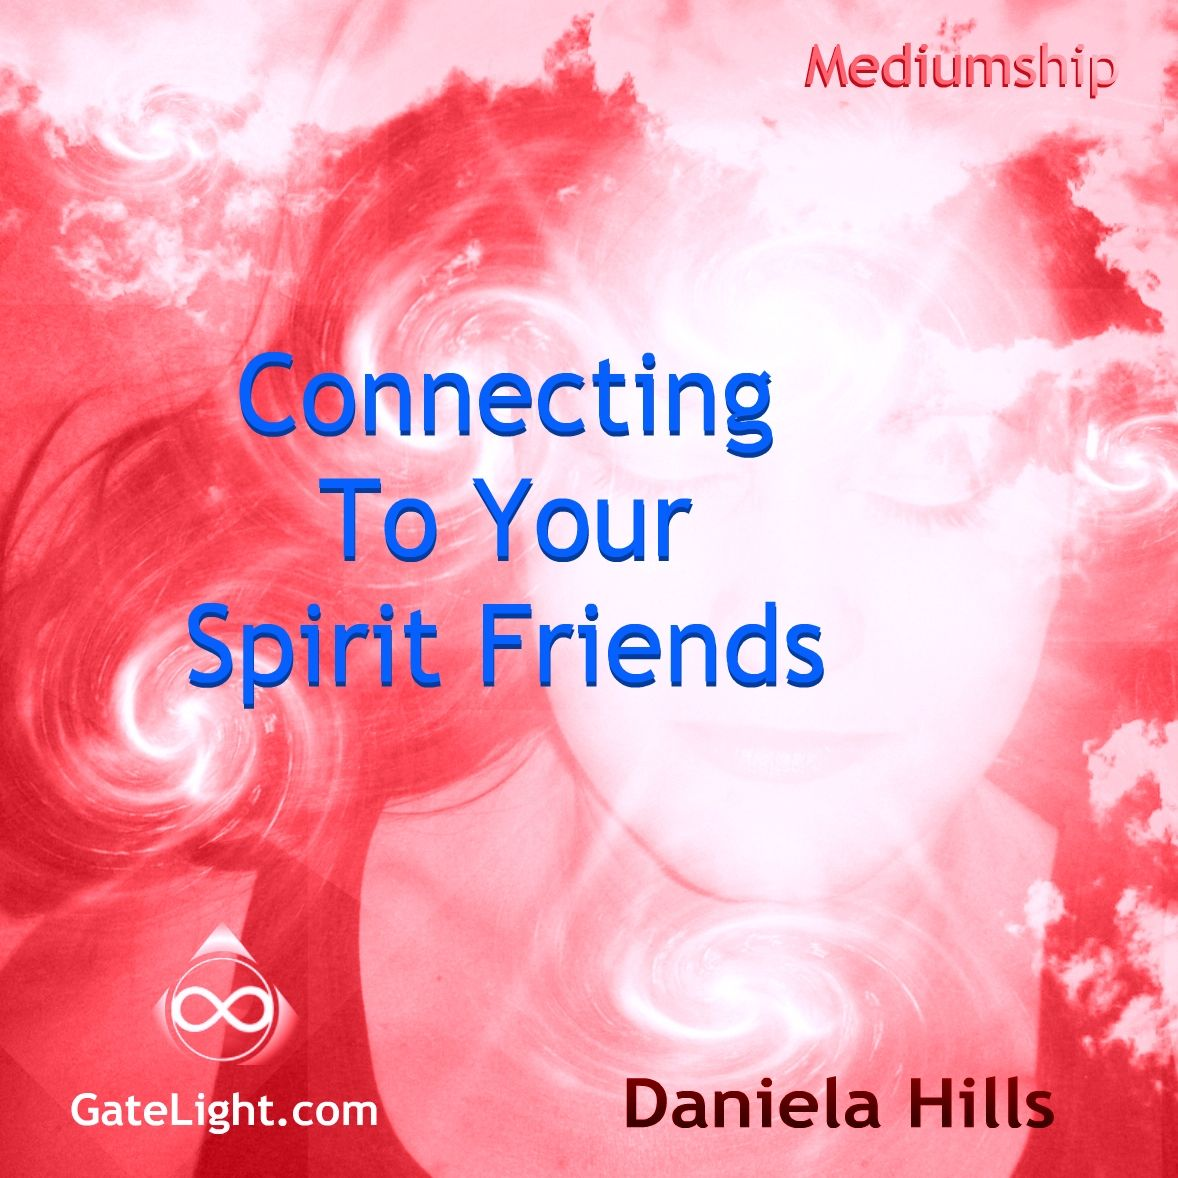 trance healing, trance medium healing, trance healing training, spirit guides, mediumship, how to connect with your spirit guide, trance mediumship,